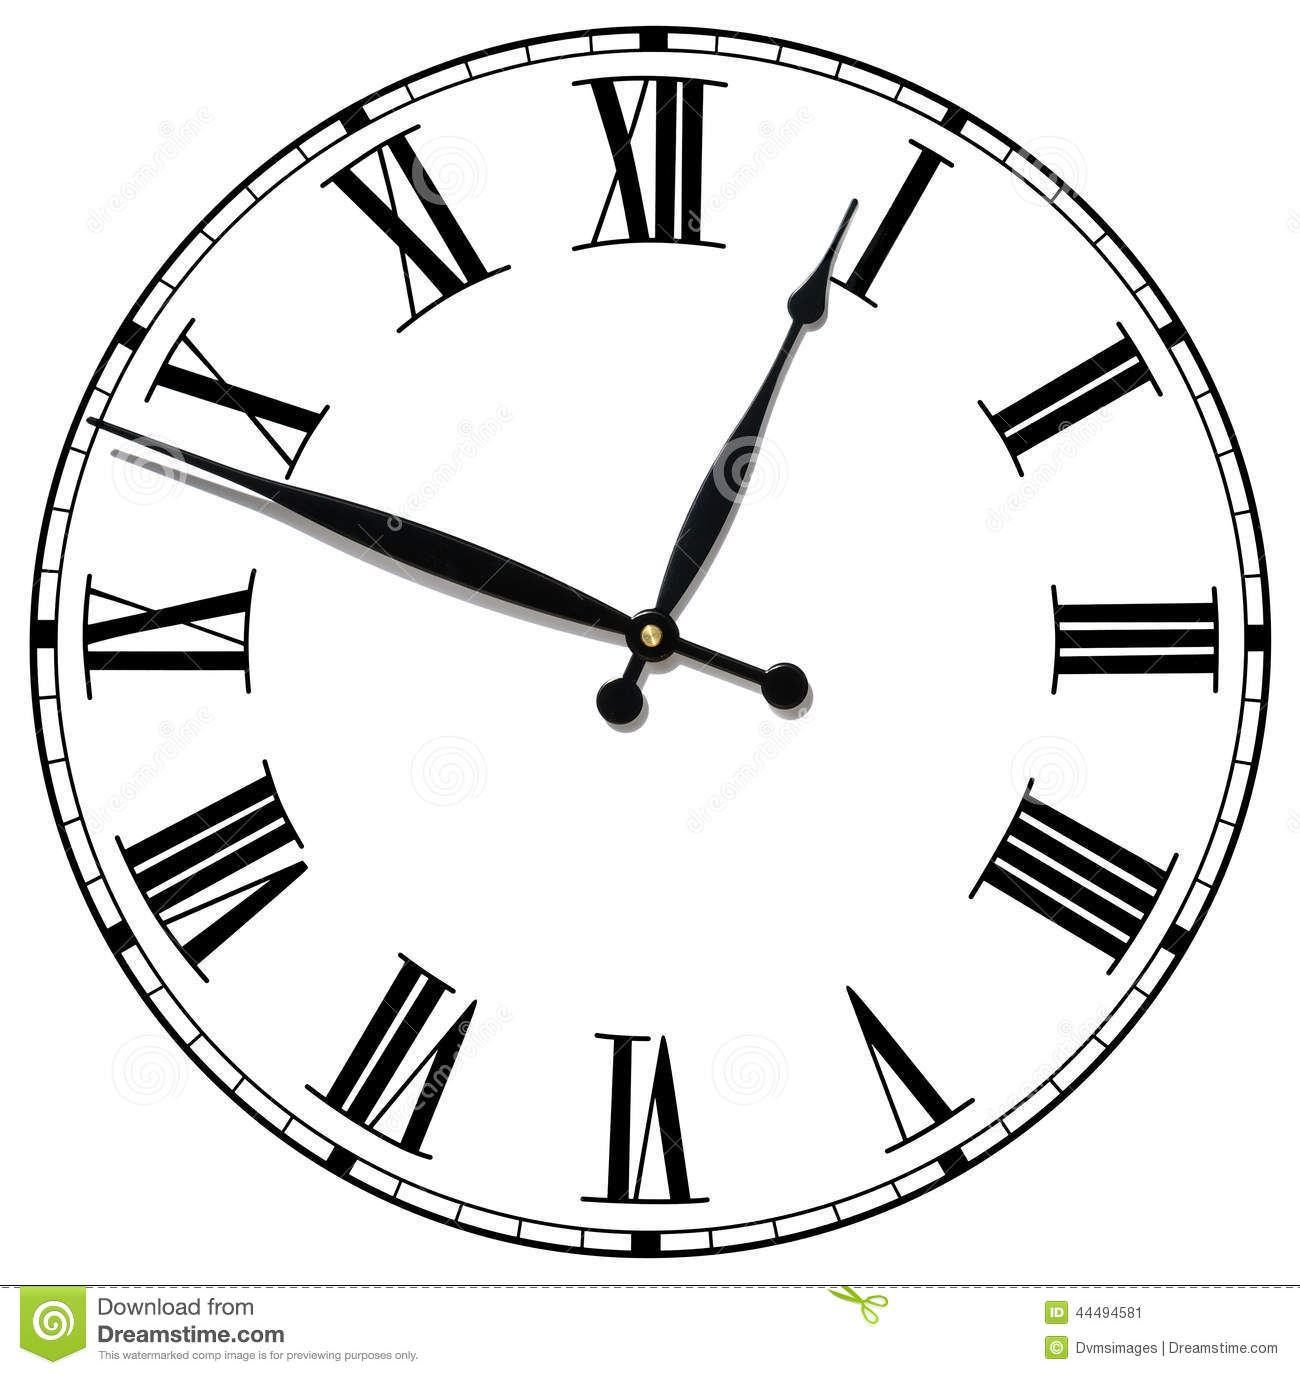 Worksheet Clock Face Grass Fedjp Worksheet Study Site